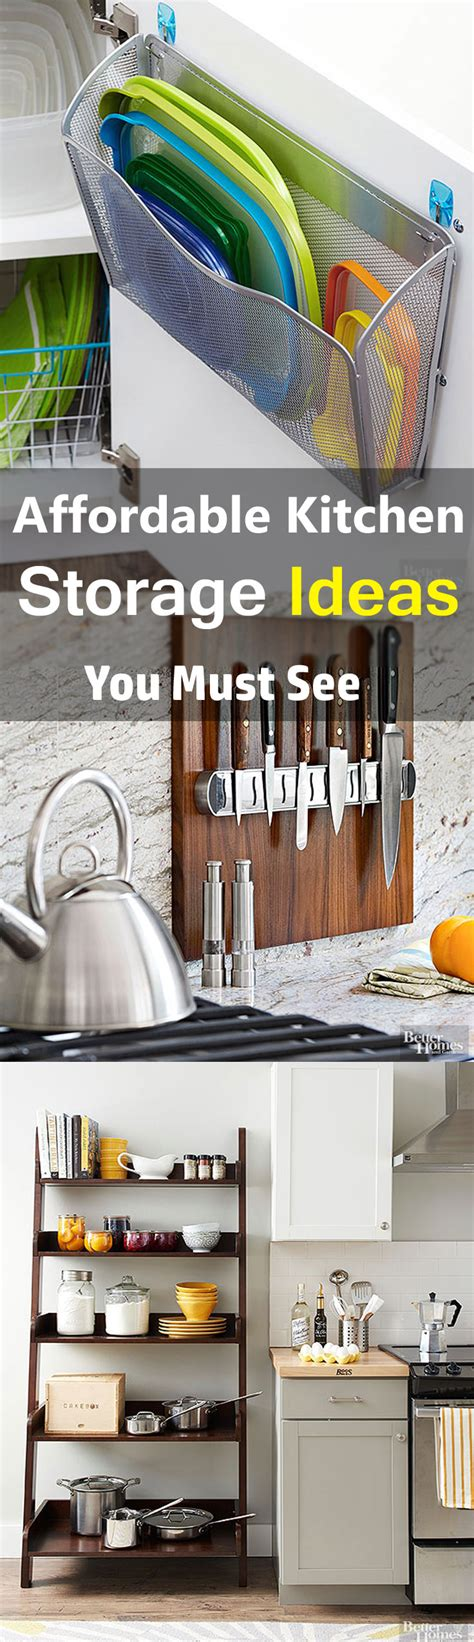 cheap kitchen storage ideas cheap kitchen storage ideas 28 images affordable